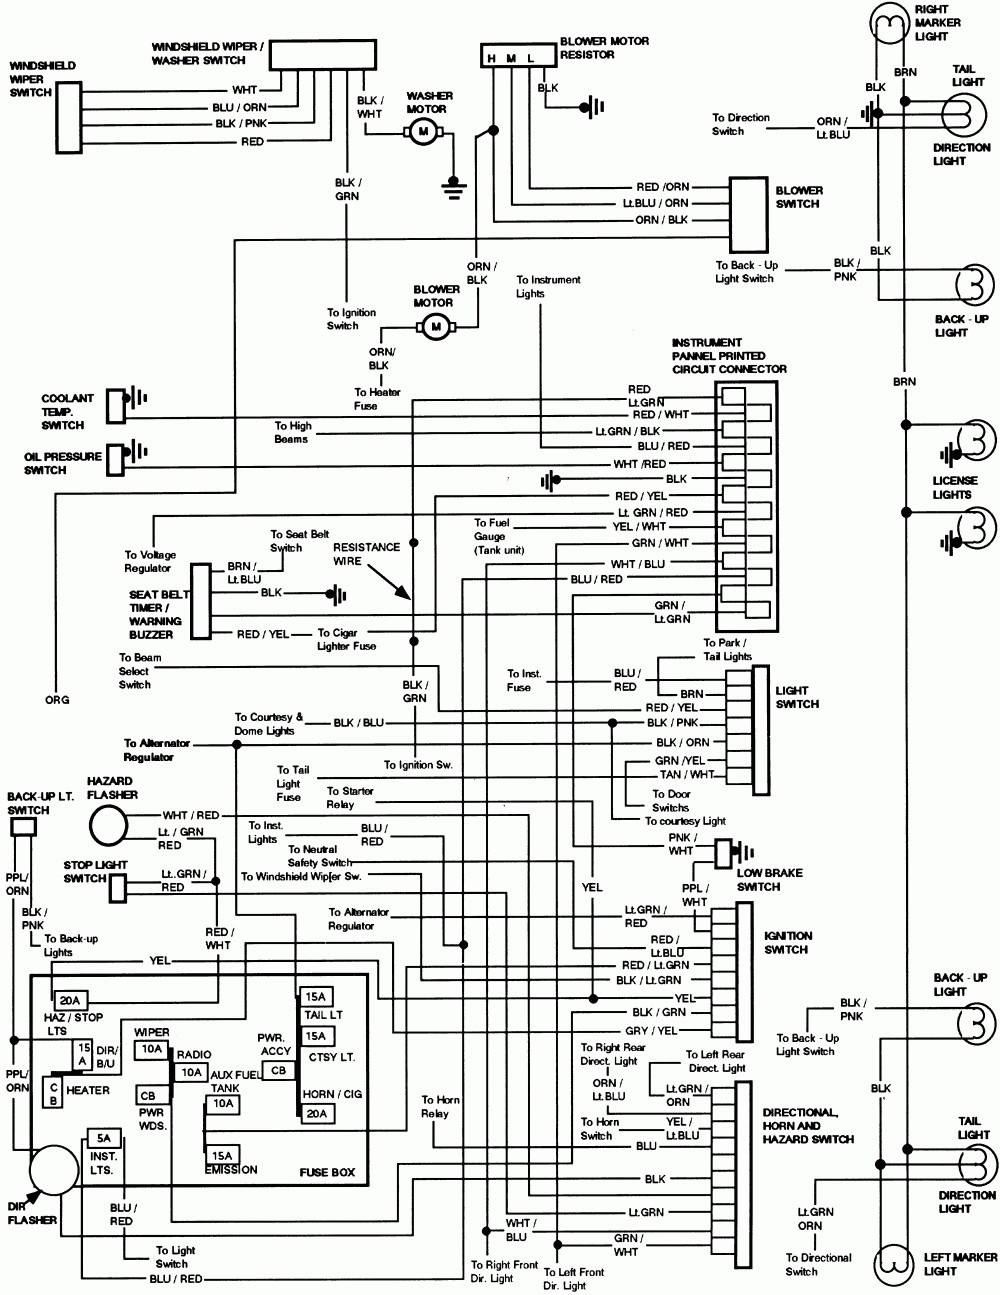 medium resolution of 1987 ford e250 wiring diagram wiring diagram used 1987 ford e350 wiring diagram 1986 ford e250